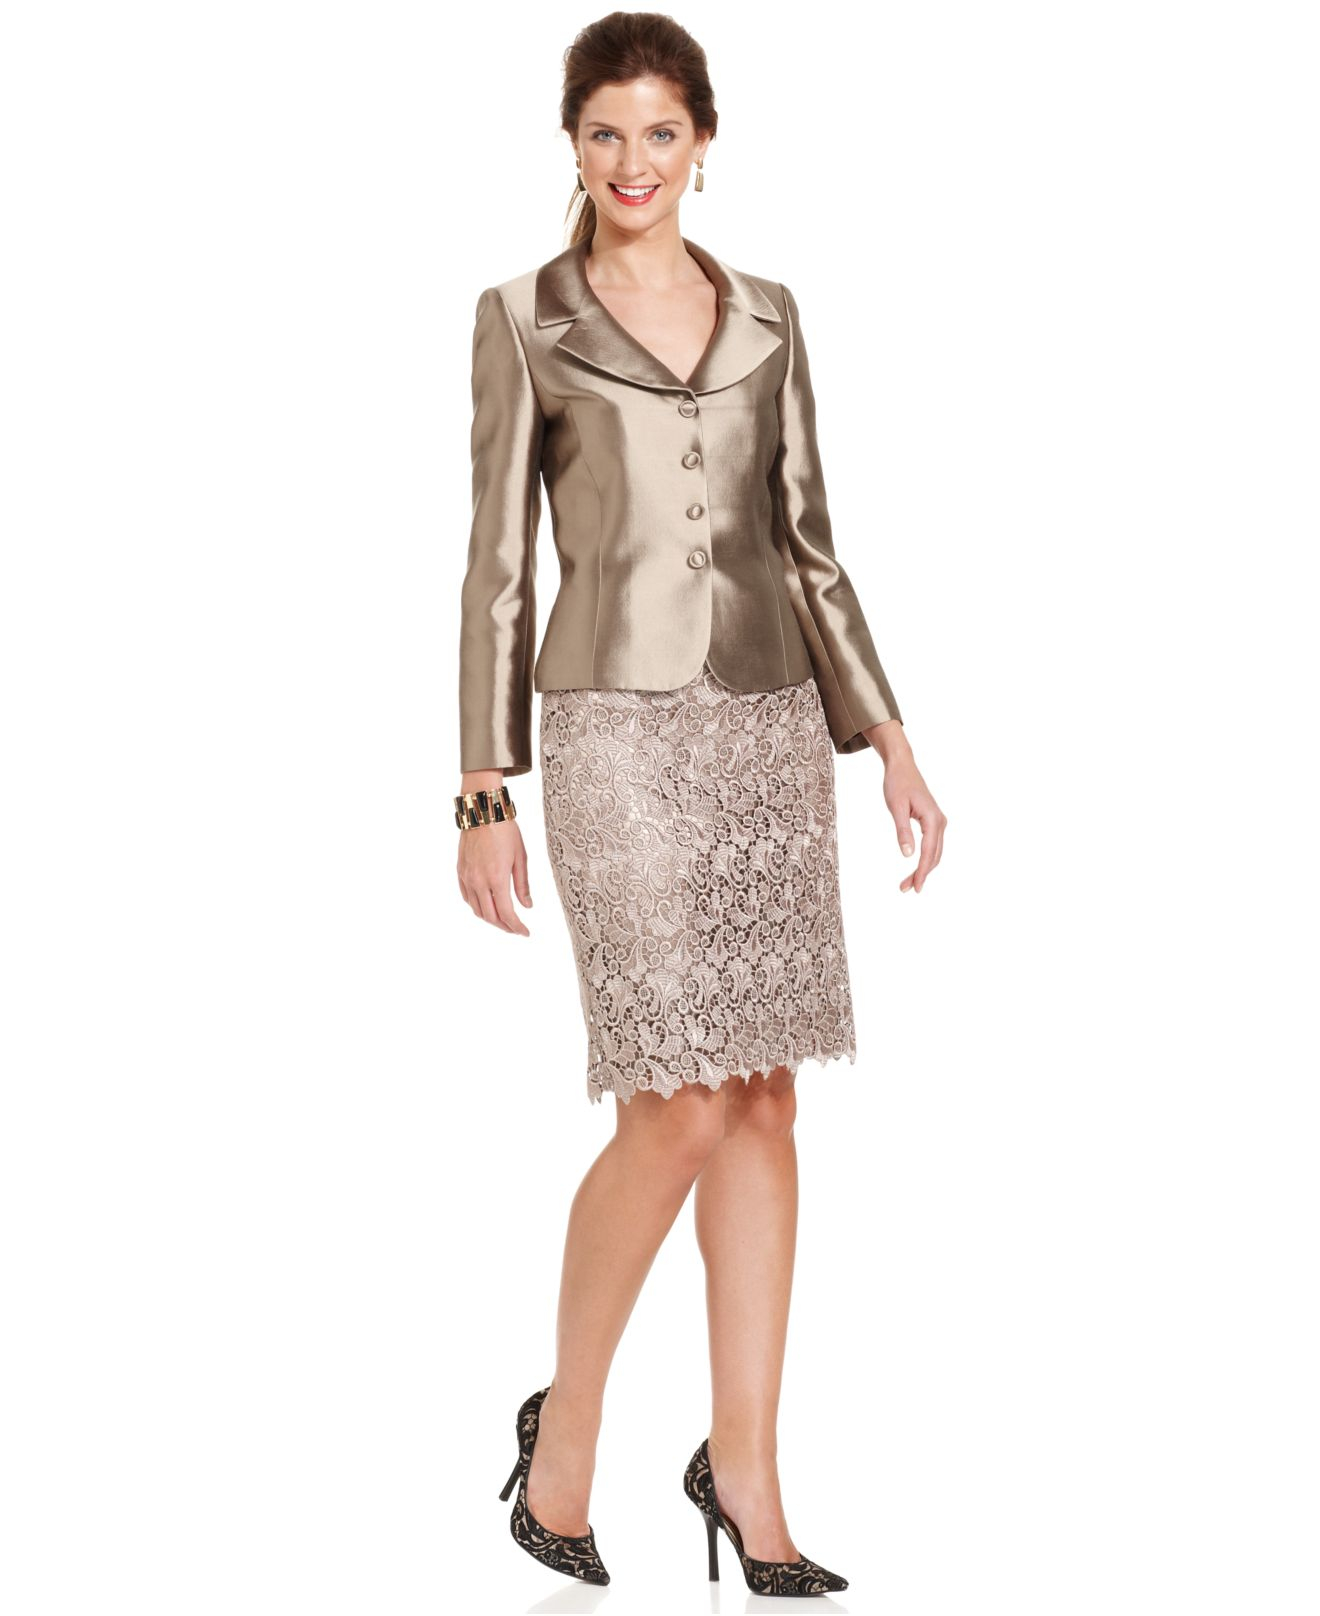 a046fa1c820a Tahari Three-button Metallic Lace Skirt Suit in Brown - Lyst